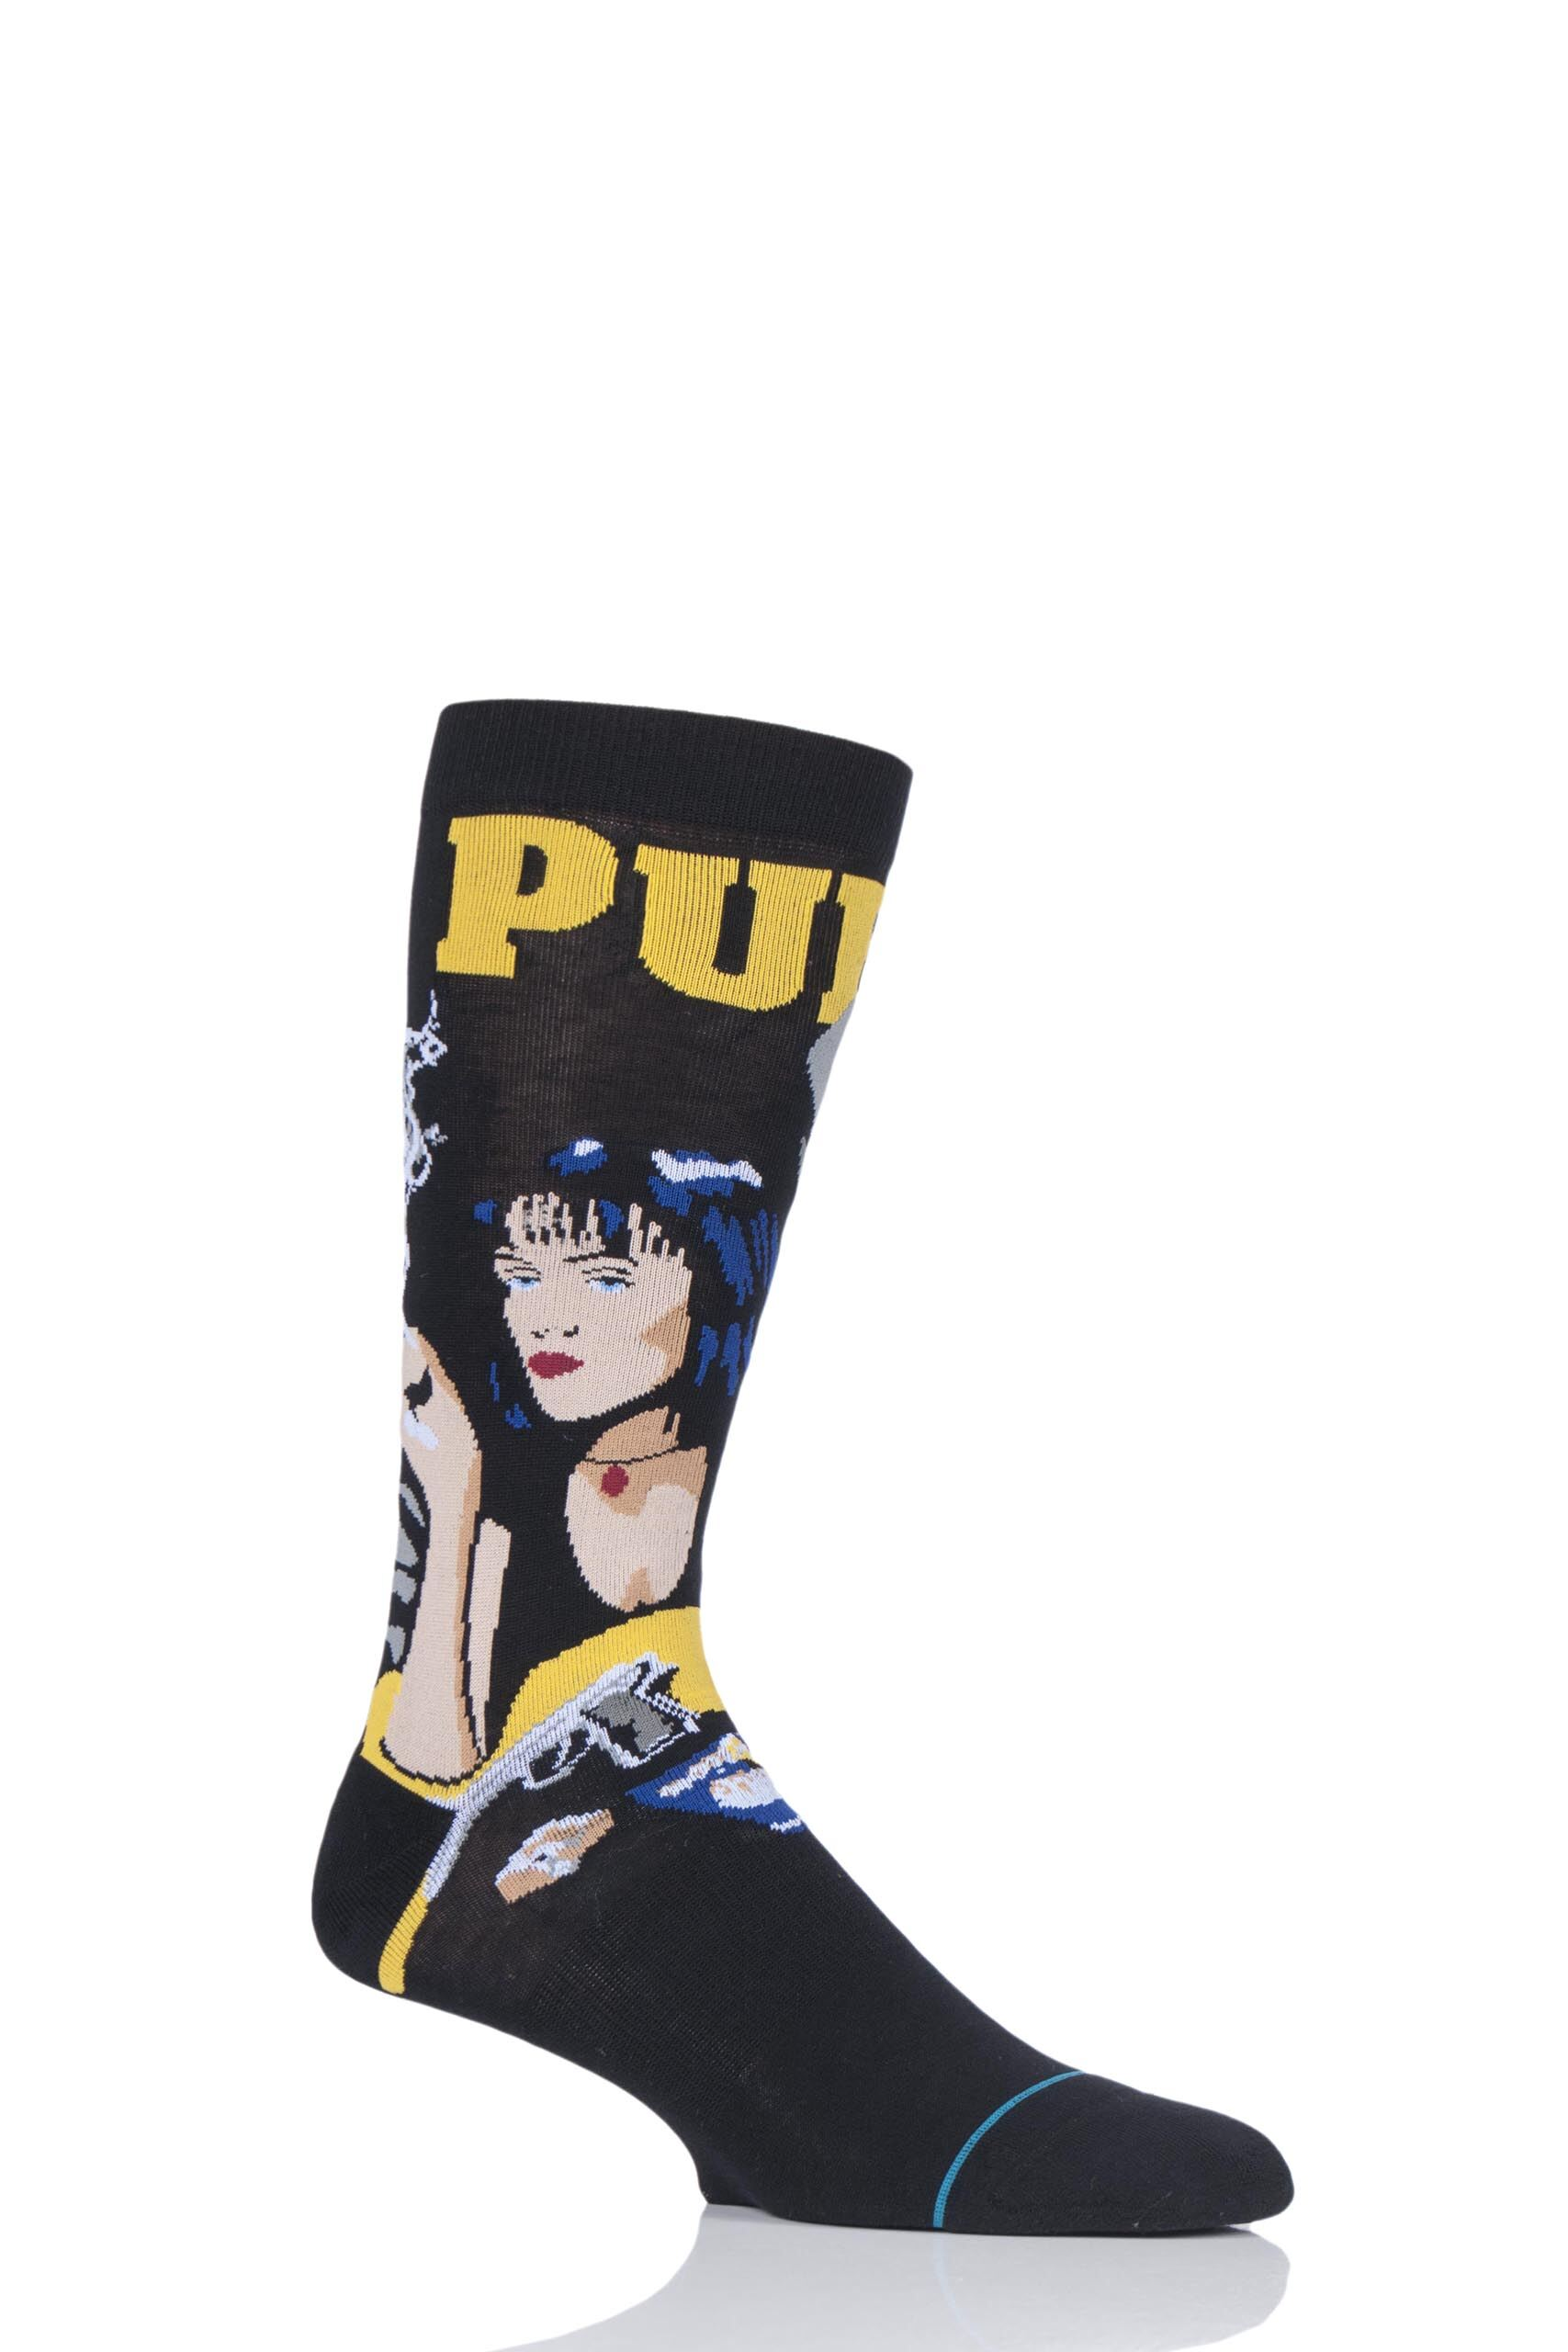 Image of 1 Pair Black Quentin Tarantino Collection Pulp Fiction Socks Men's 8.5-11.5 Mens - Stance